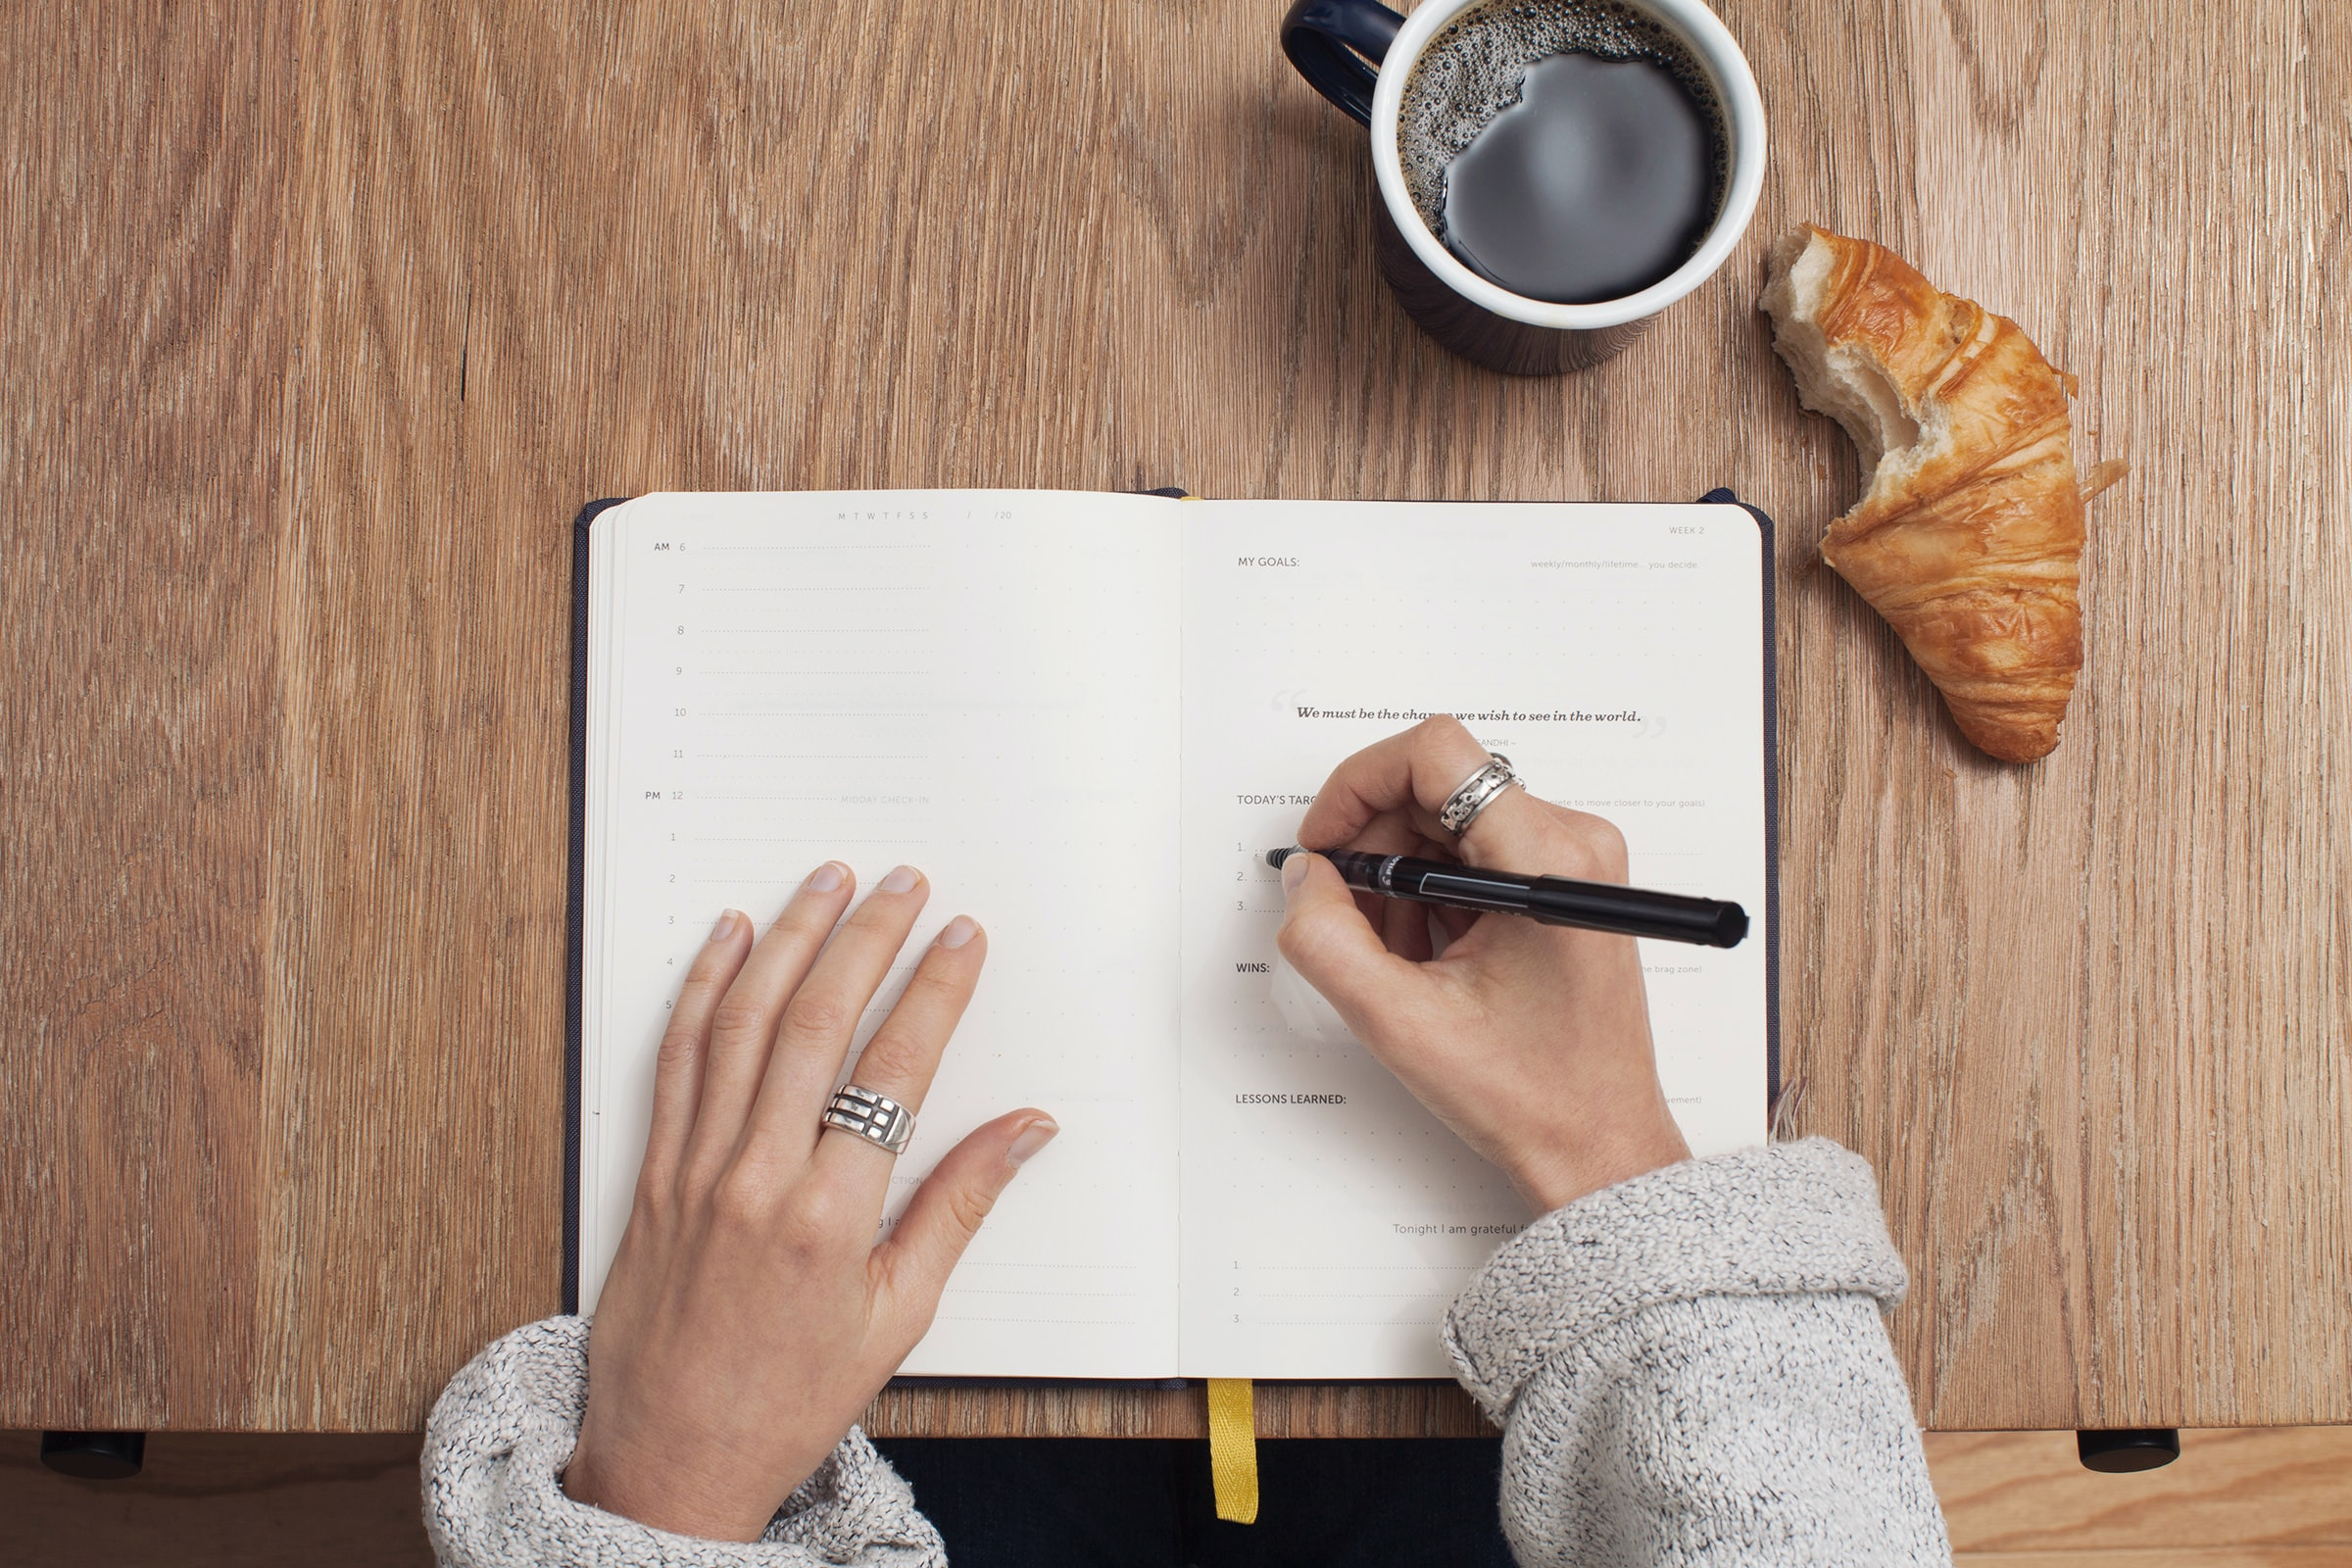 Letter writing: 7 essential tips for effective letter writing in 2021